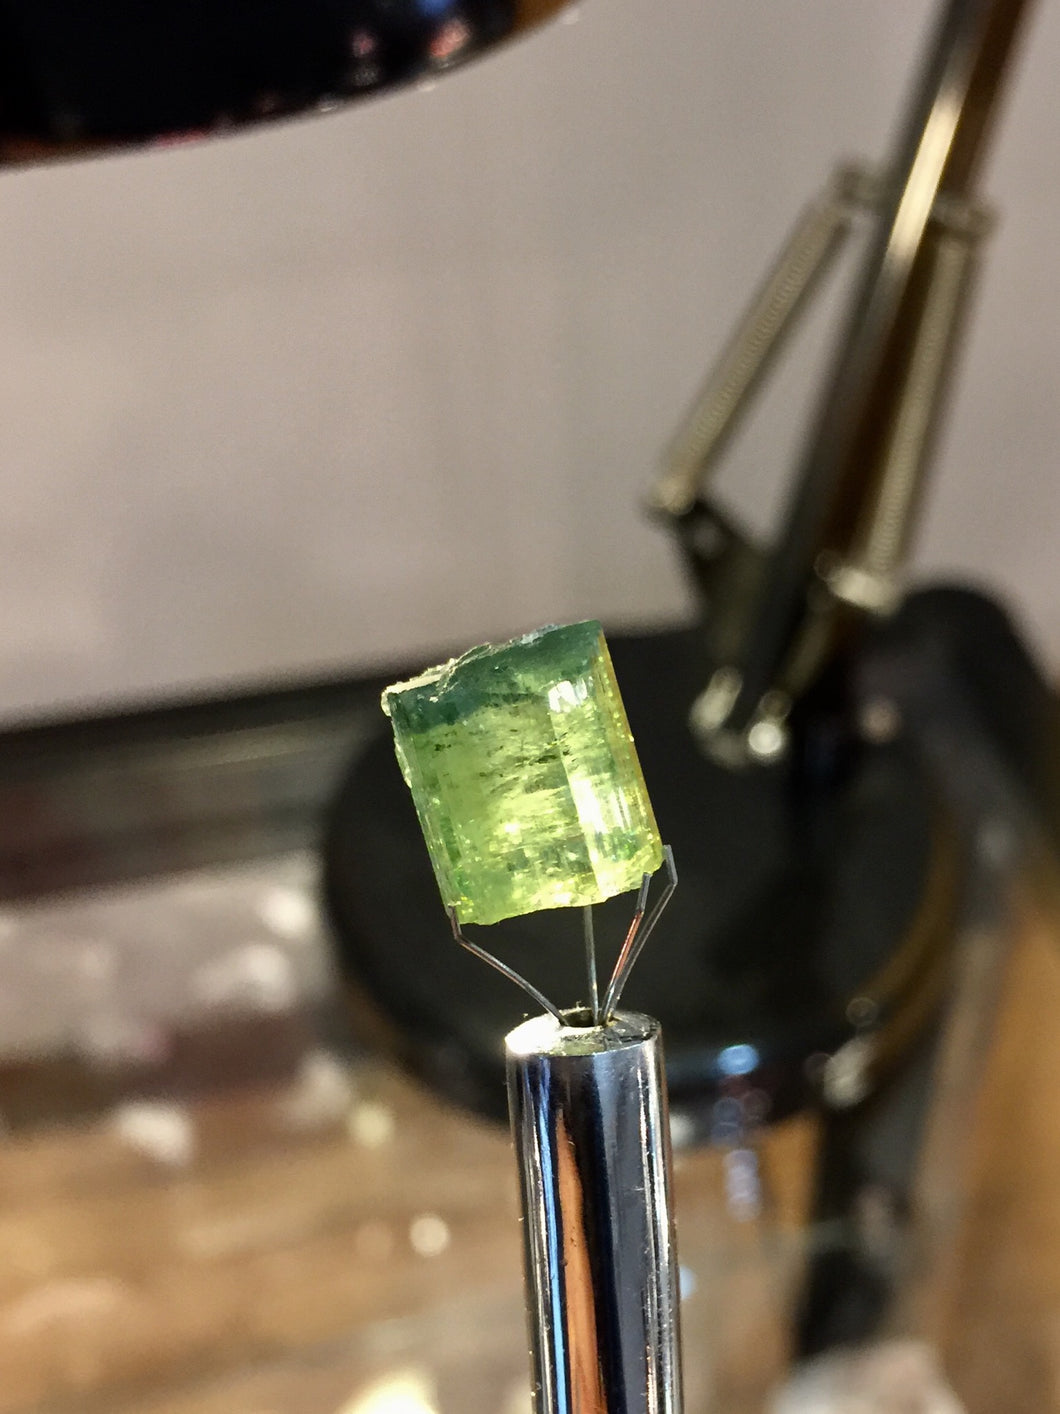 Green Tourmaline crystal with bluish core from Minas Gerais, Brazil